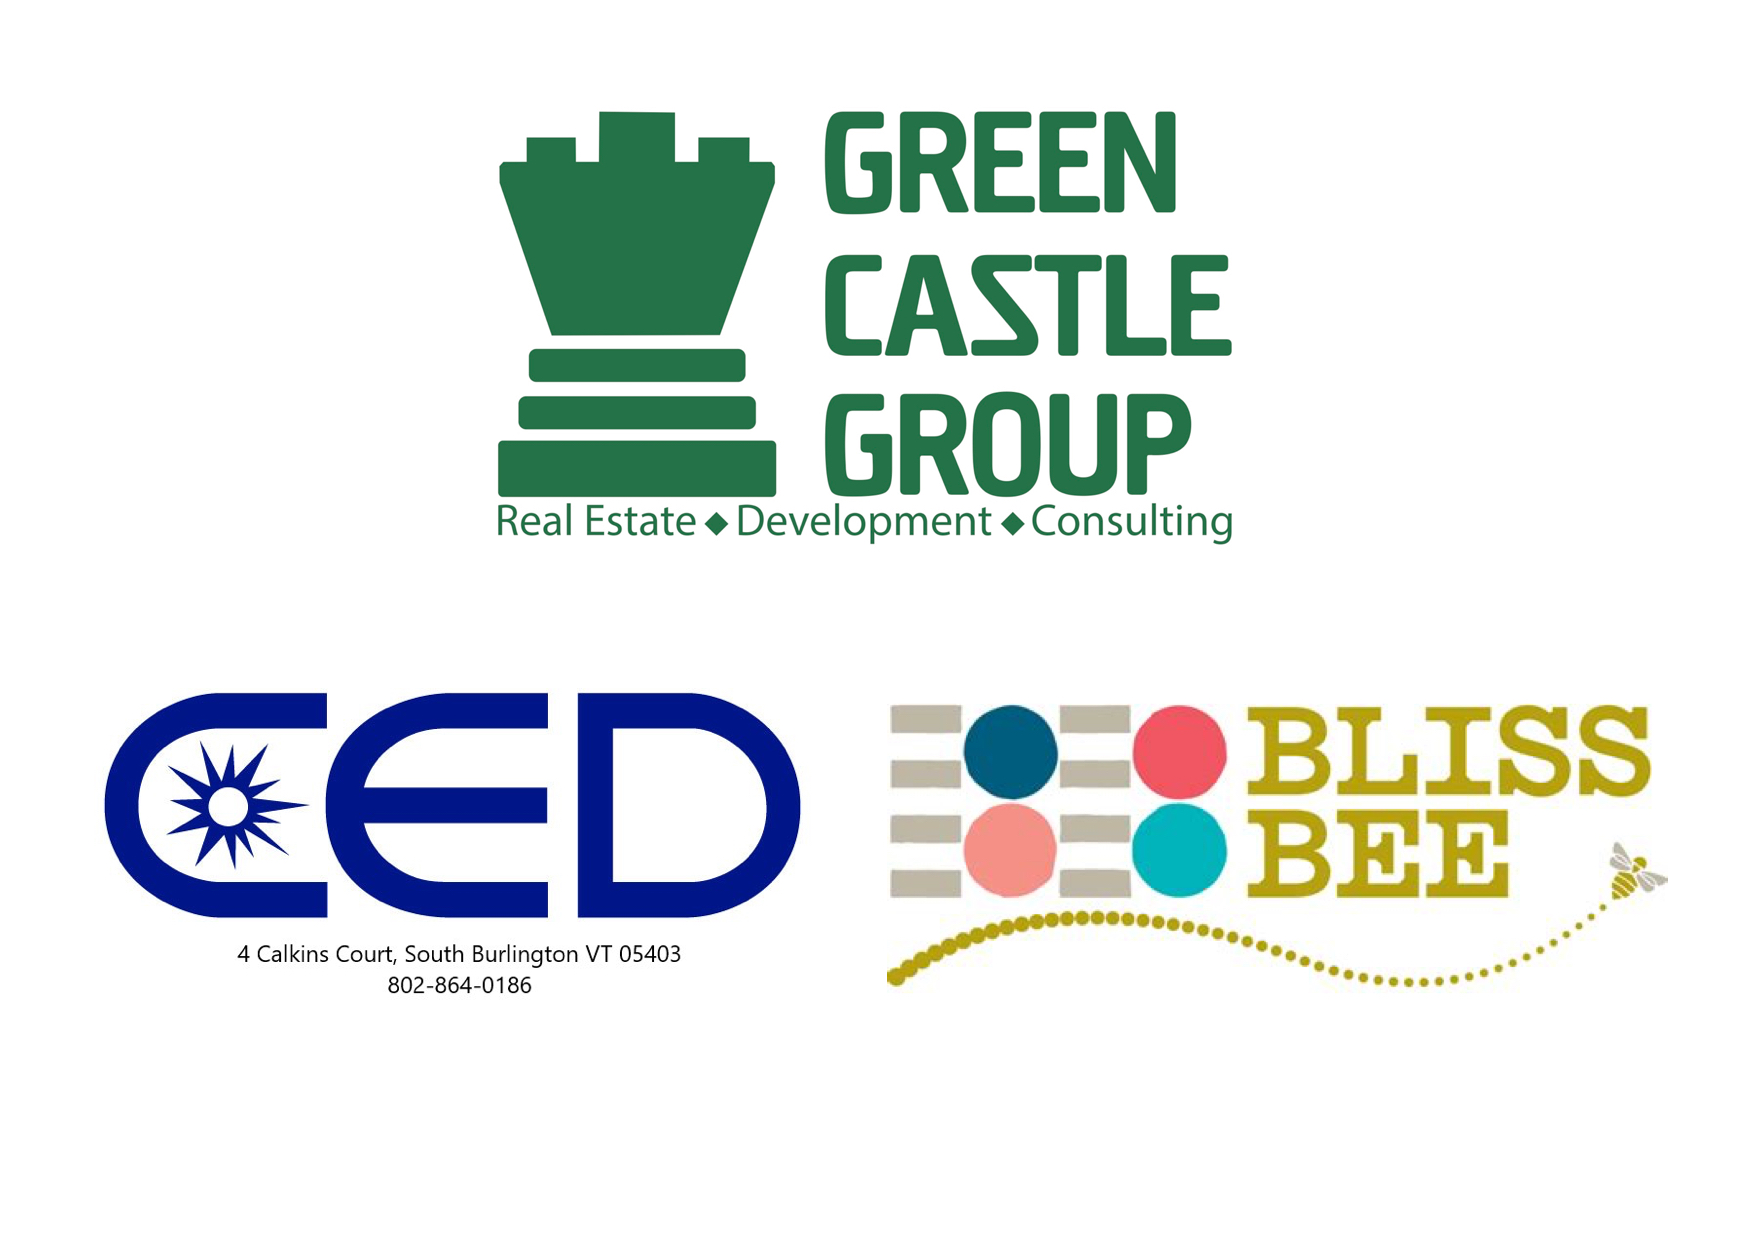 Green Castle Group